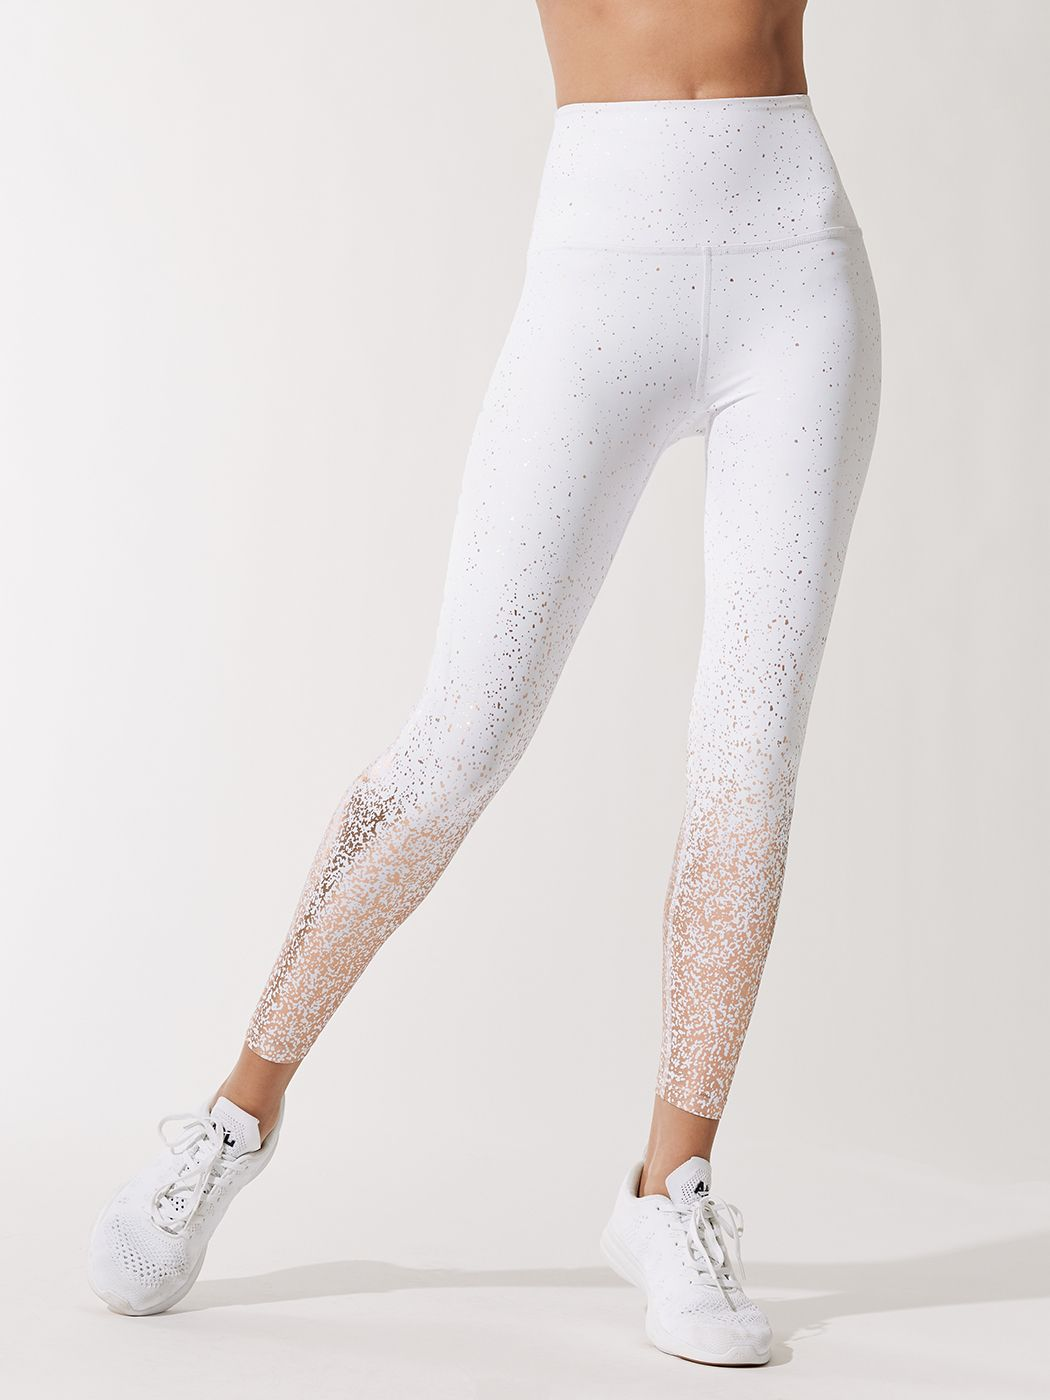 57887870f9c9b1 Alloy Ombre High Waisted Midi Leggings in Black-white Rose Gold Speckle by  Beyond Yoga from Carbon38; Get 20% off with your first purchase of $100+  with ...